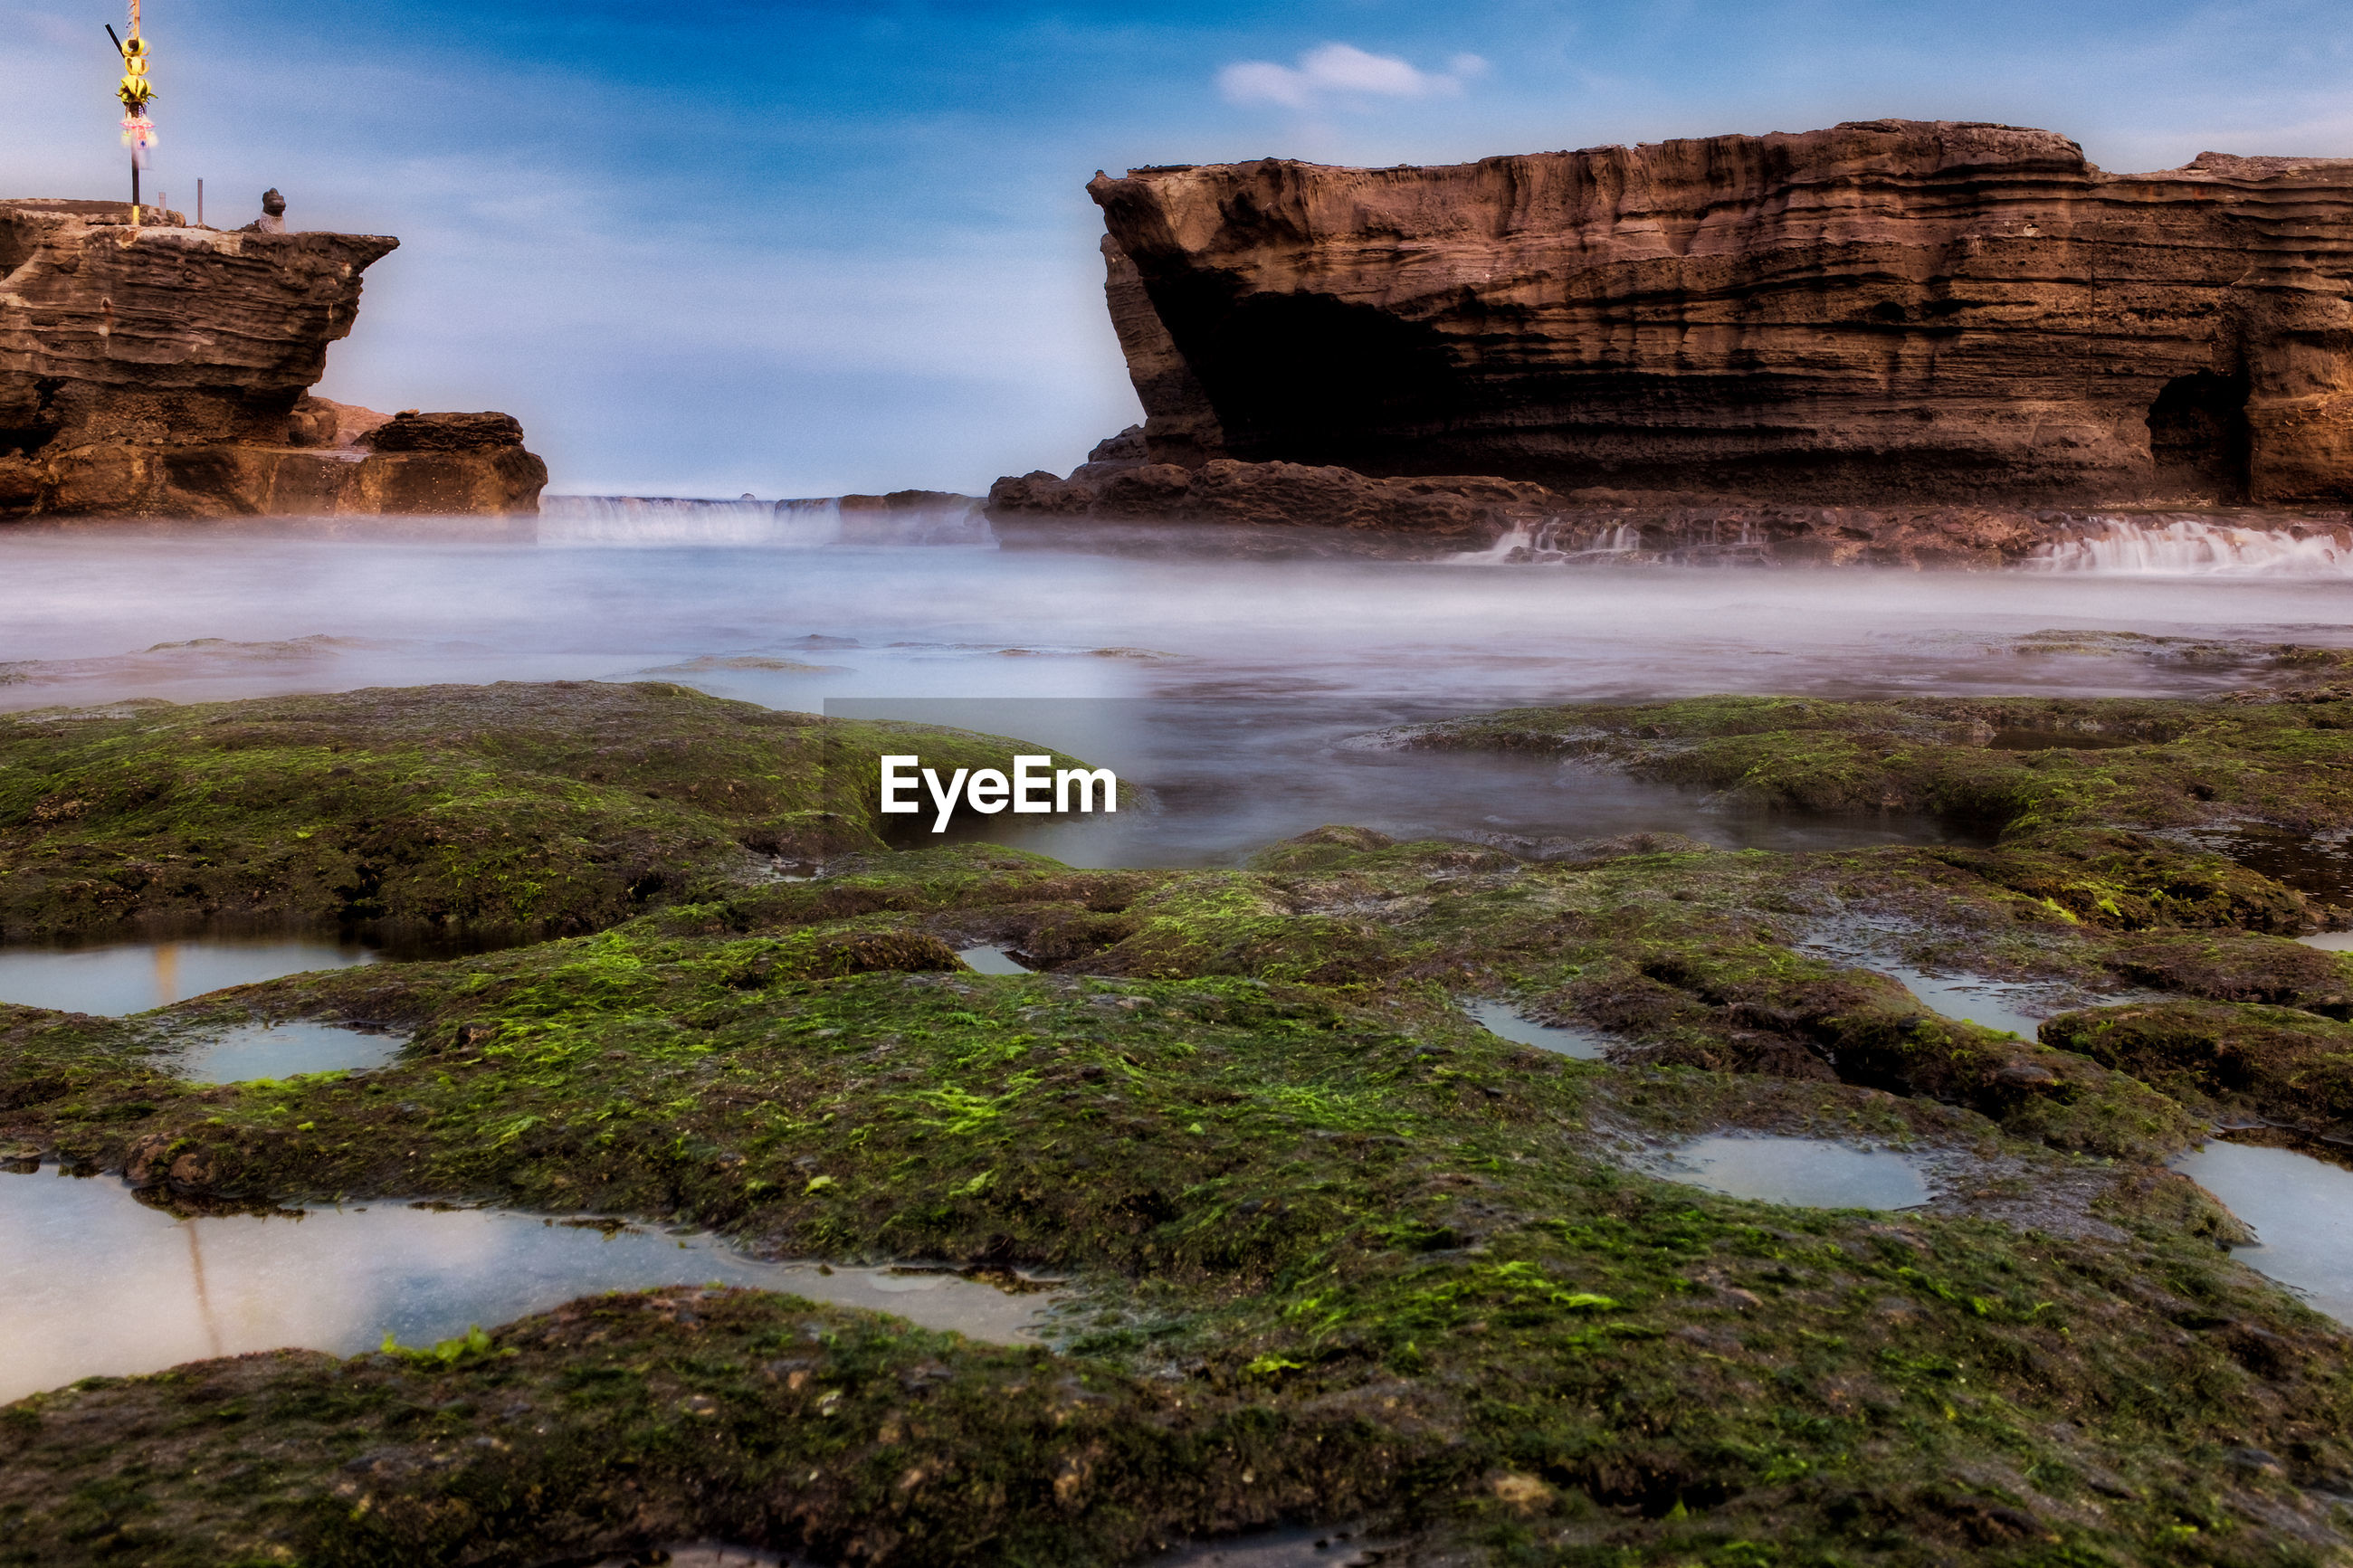 Rock formation in water against sky in bali, indonesia